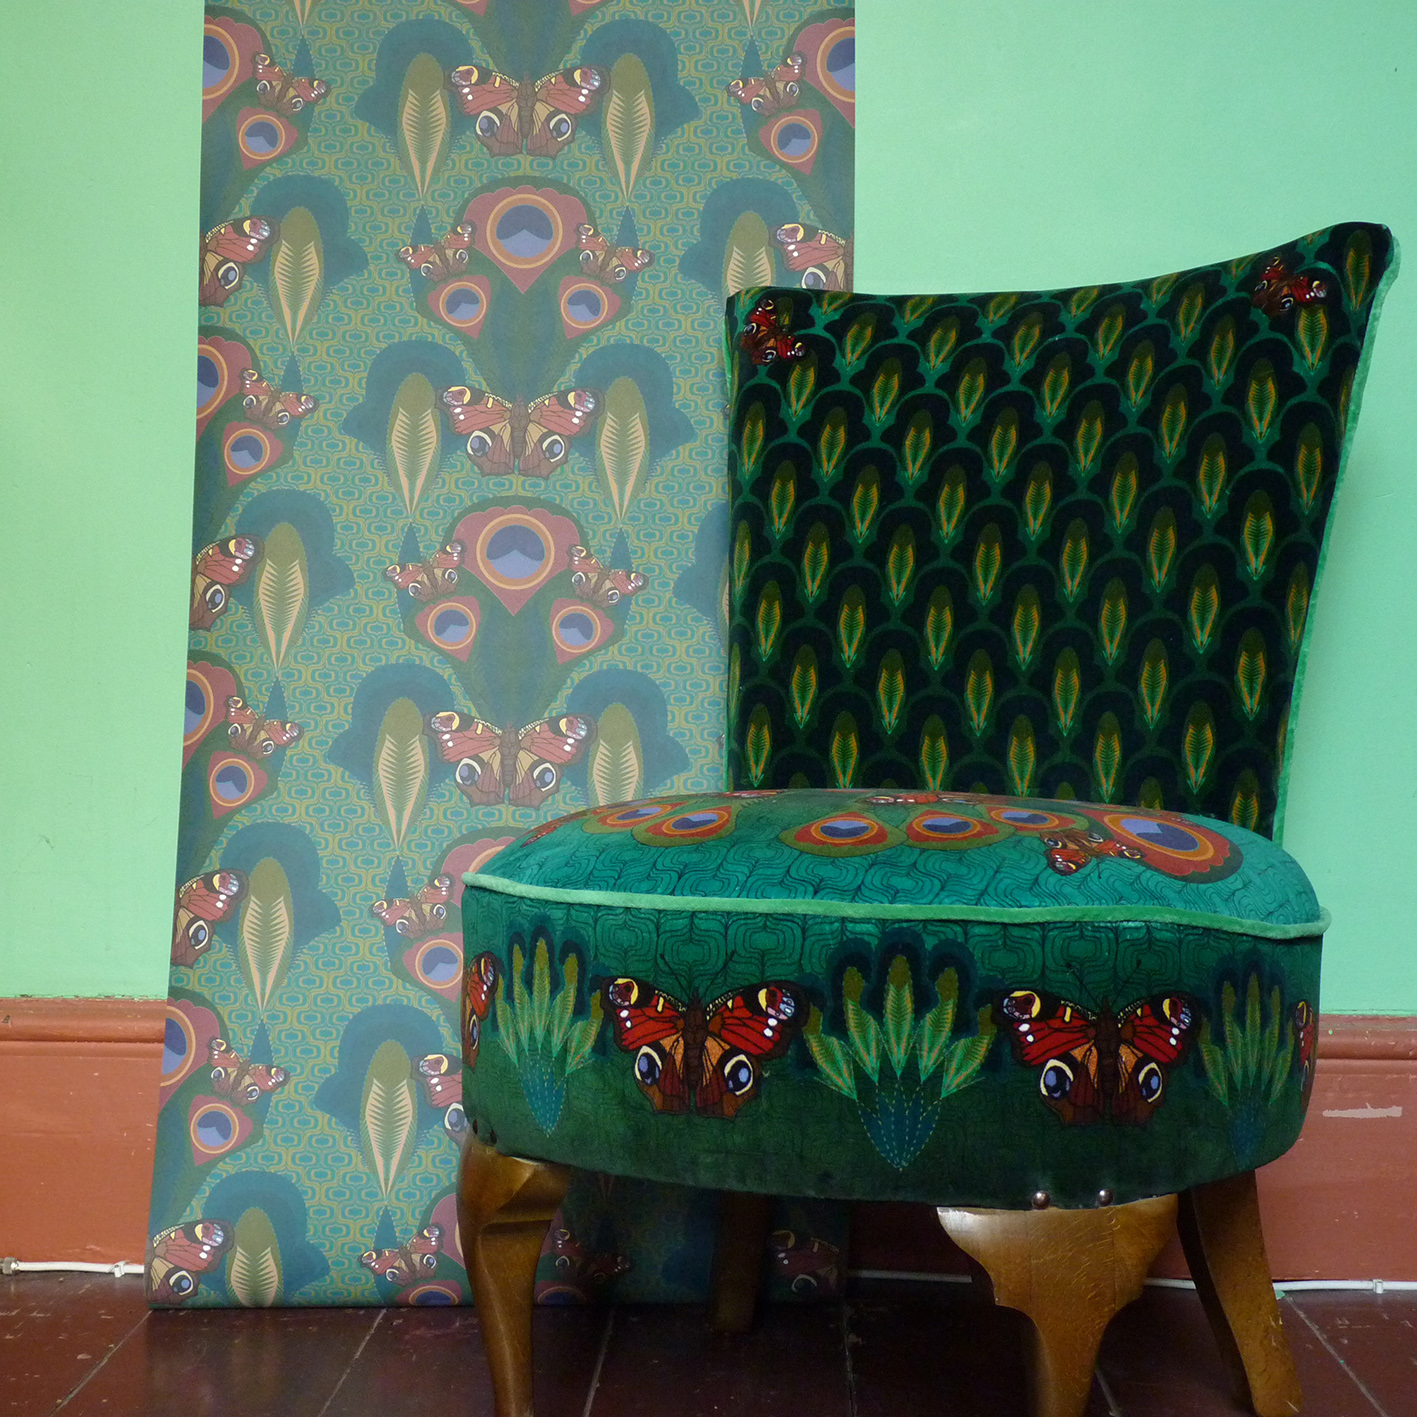 Peacock butterfly wallpaper with chair